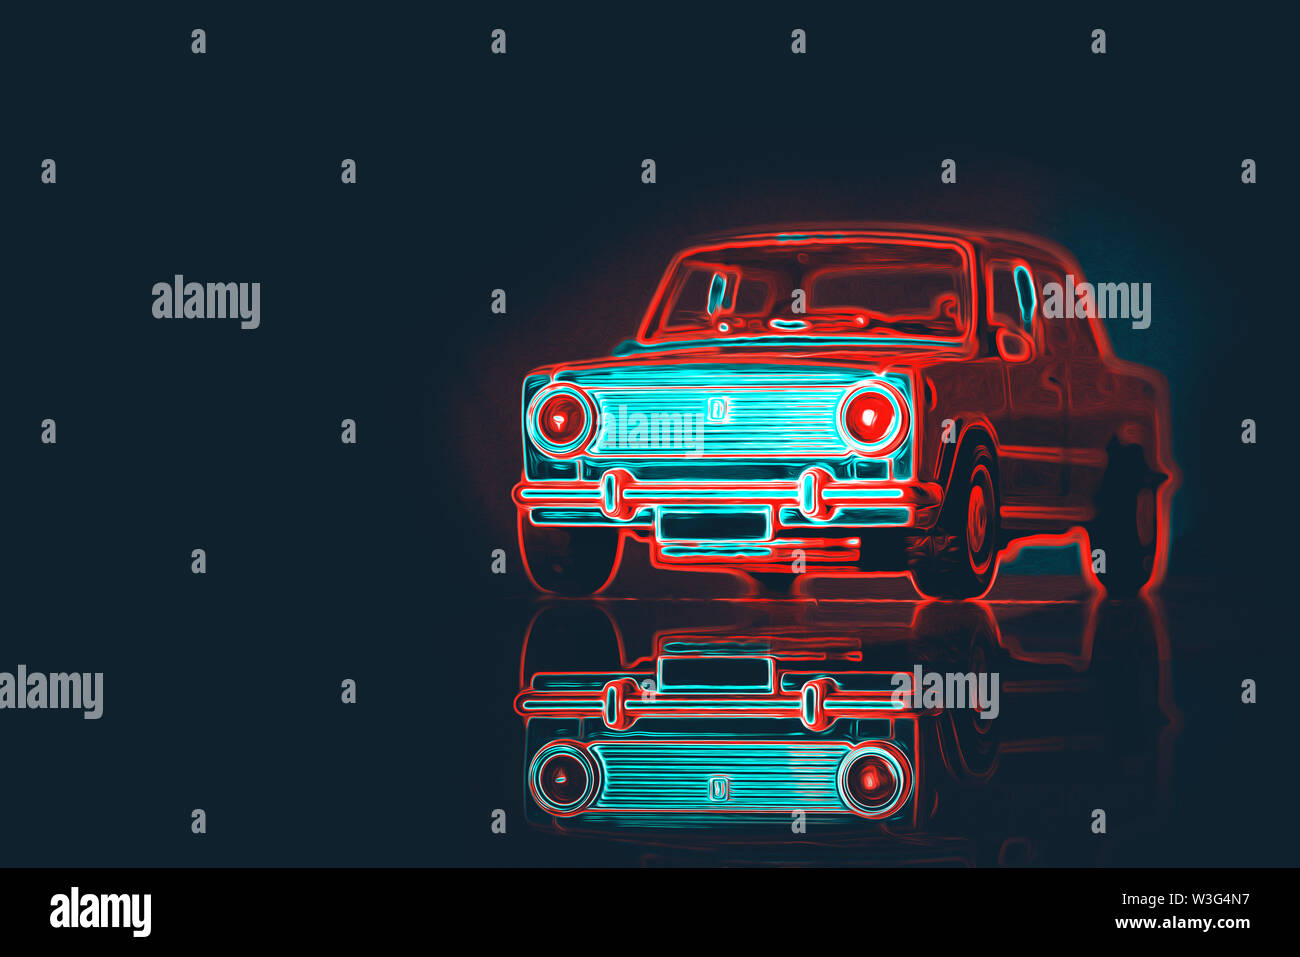 Front view of a retro car toy car on a with neon lights. - Stock Image